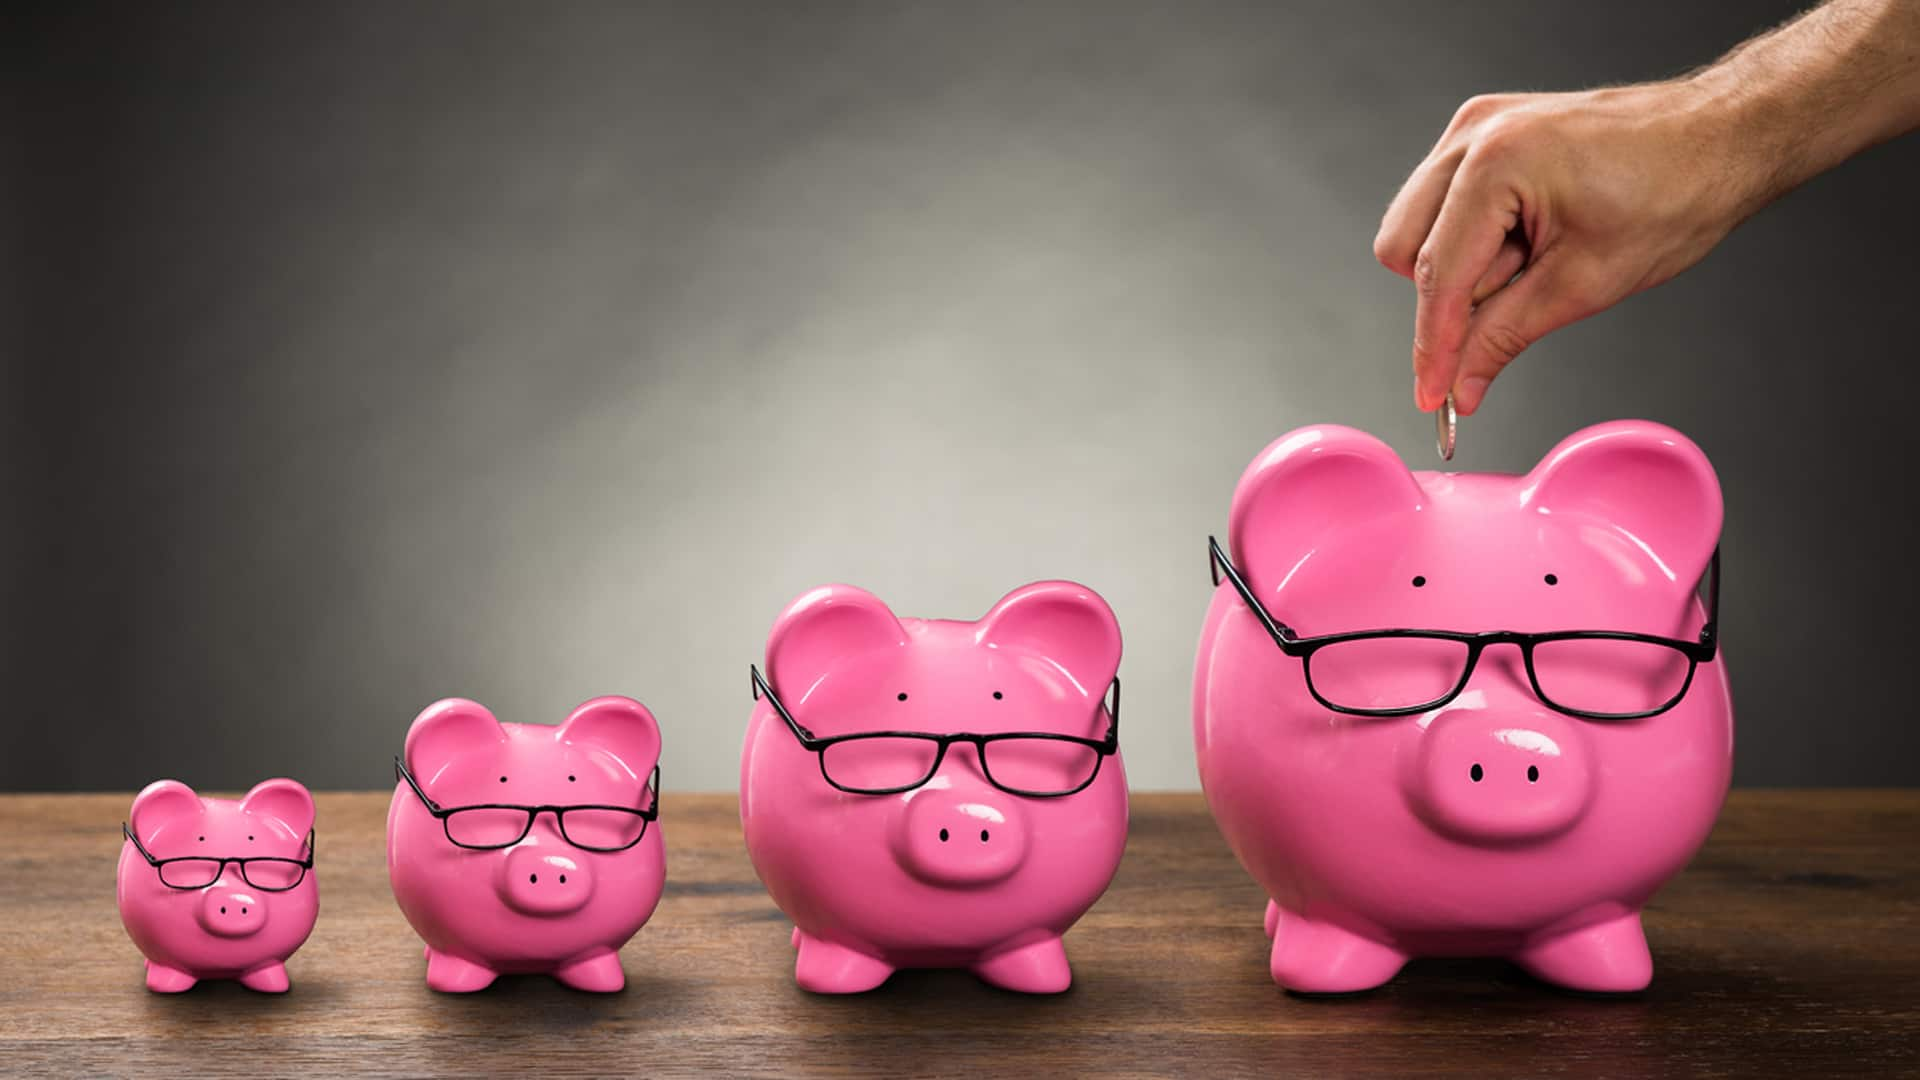 Govt hikes interest rate on small savings schemes including NSC, PPF by up to 0.4%